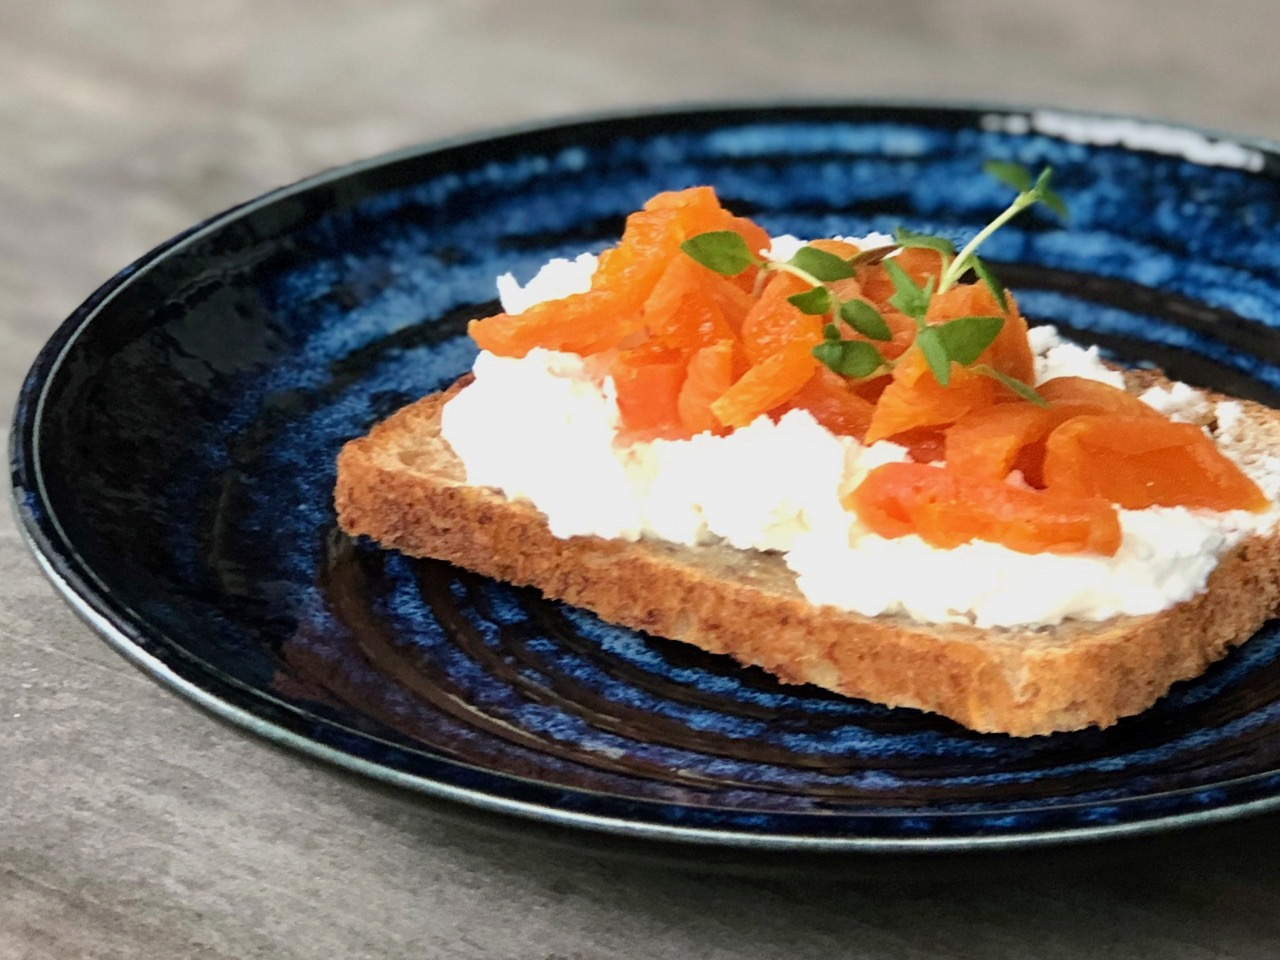 soft cheese and apricots on toast